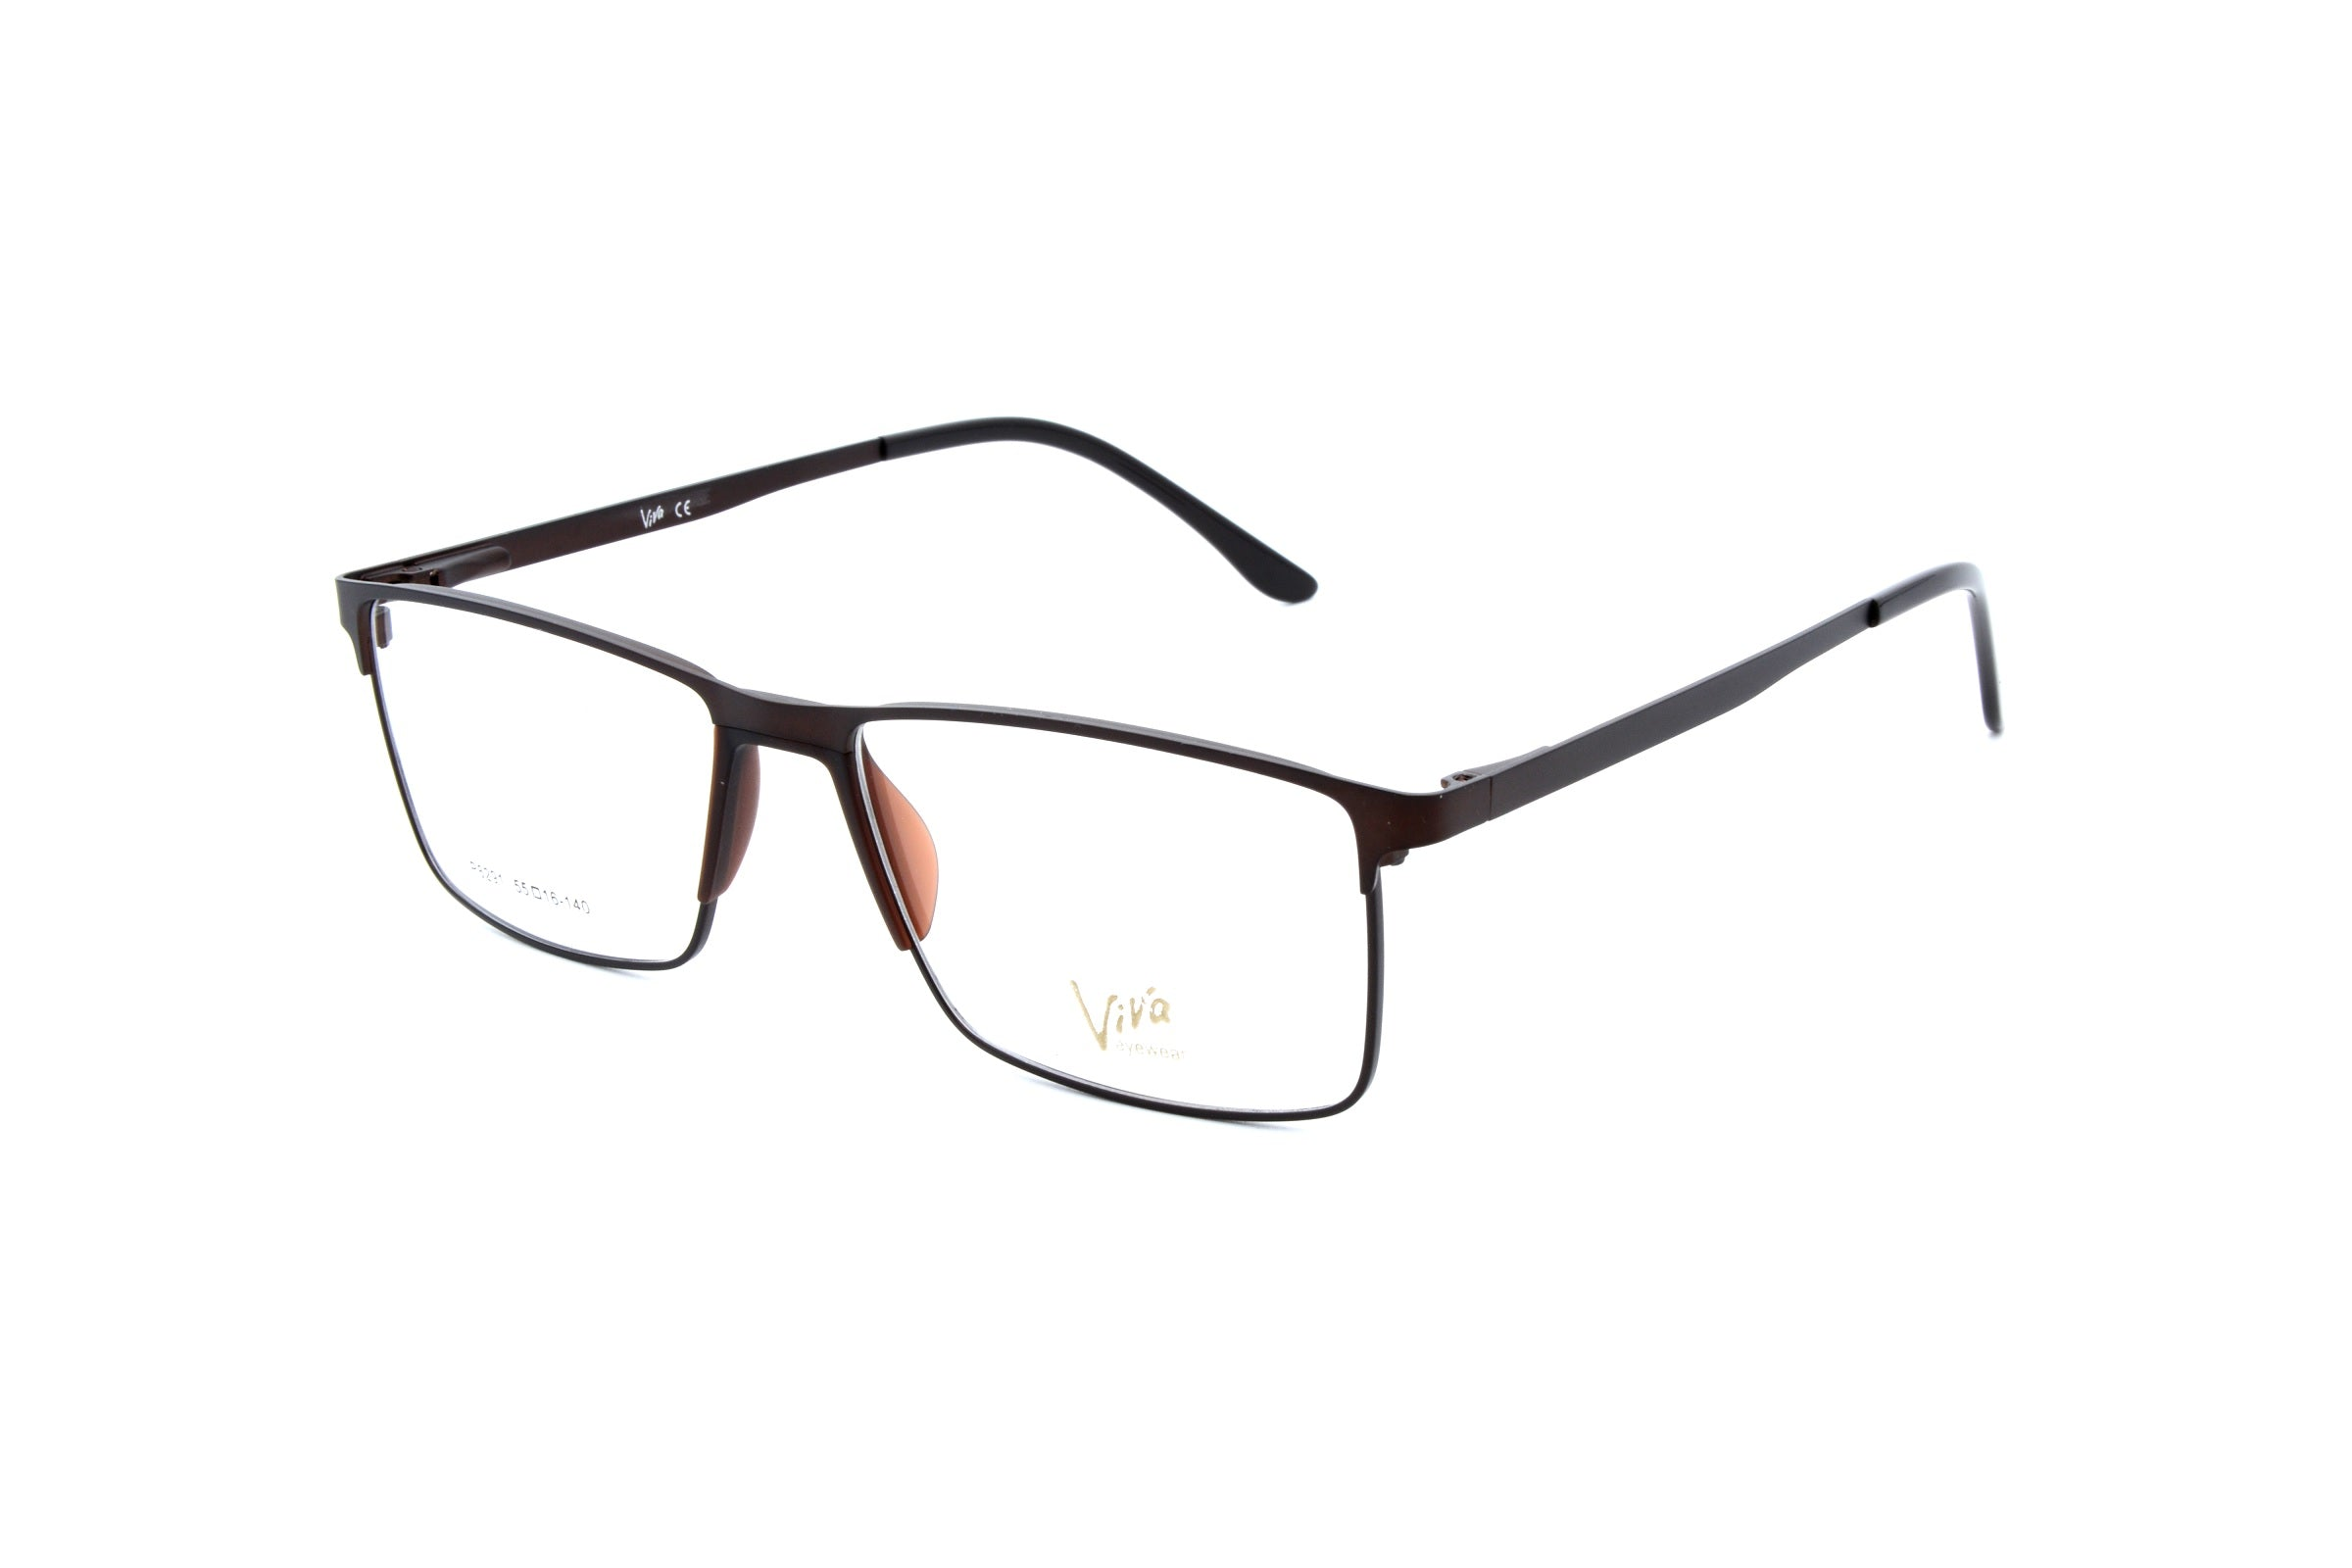 Viva eyewear 8291, M3 - Optics Trading